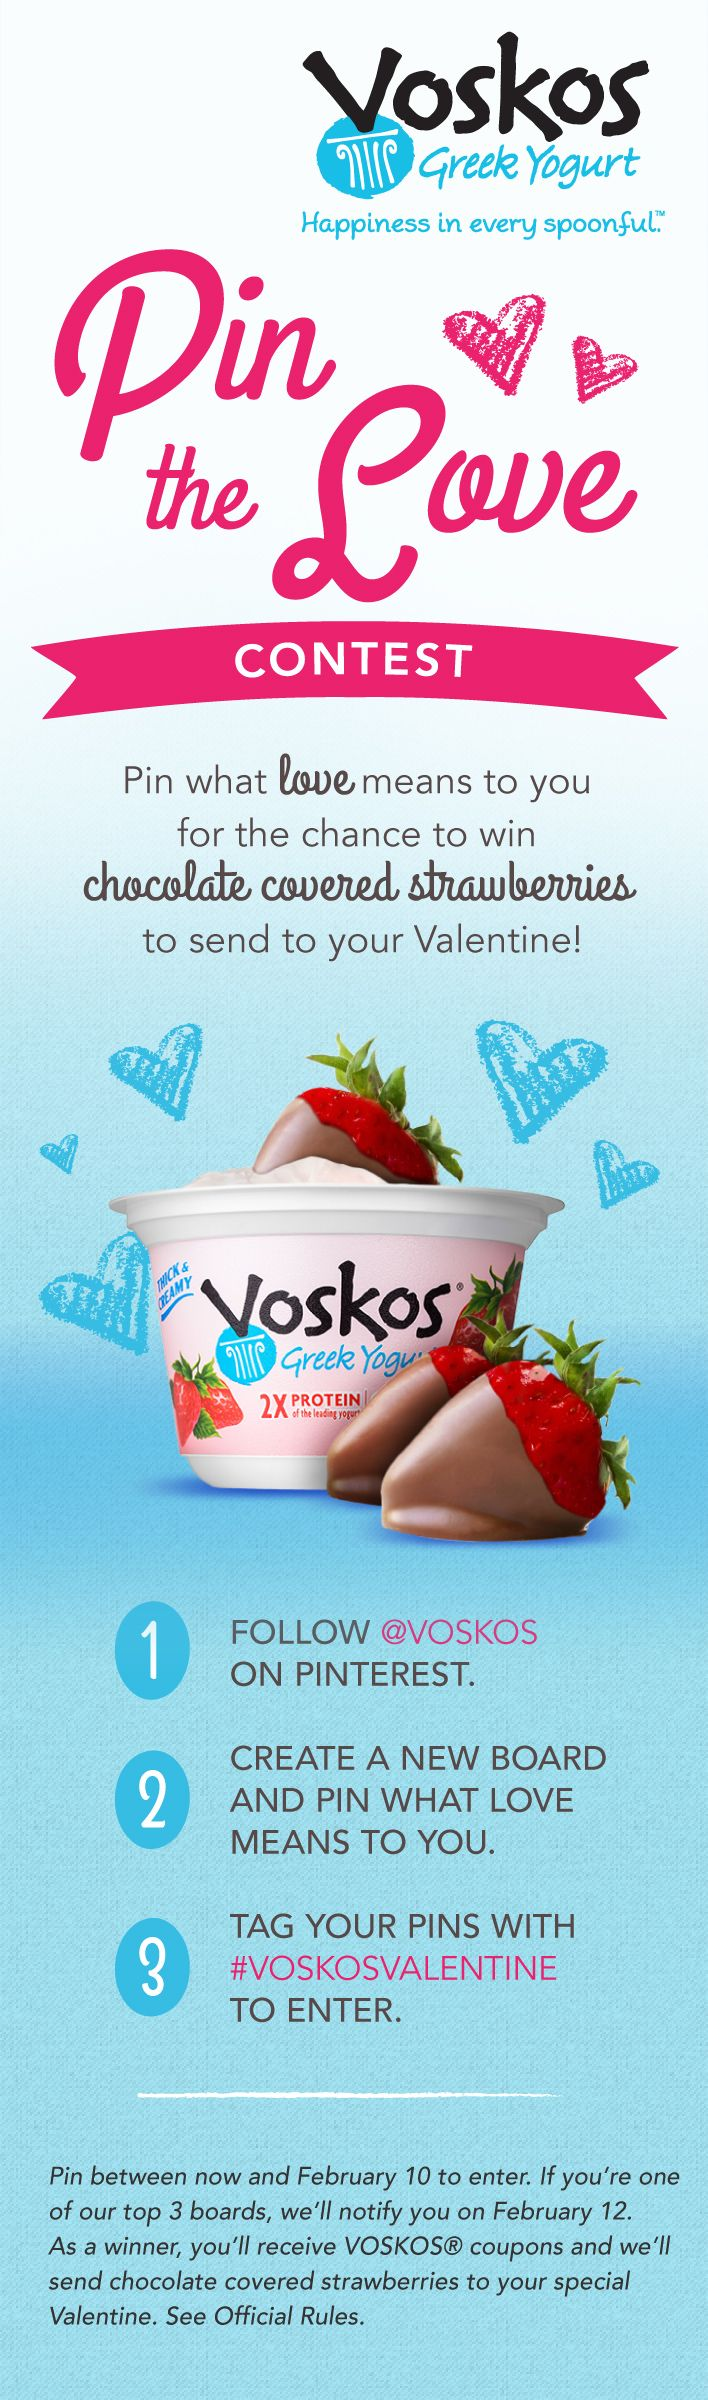 Show us what love means to you for the chance to send chocolate covered strawberries to your Valentine. Follow us @Voskos Greek Yogurt, create your own board and tag your pins with #VOSKOSValentine to enter.